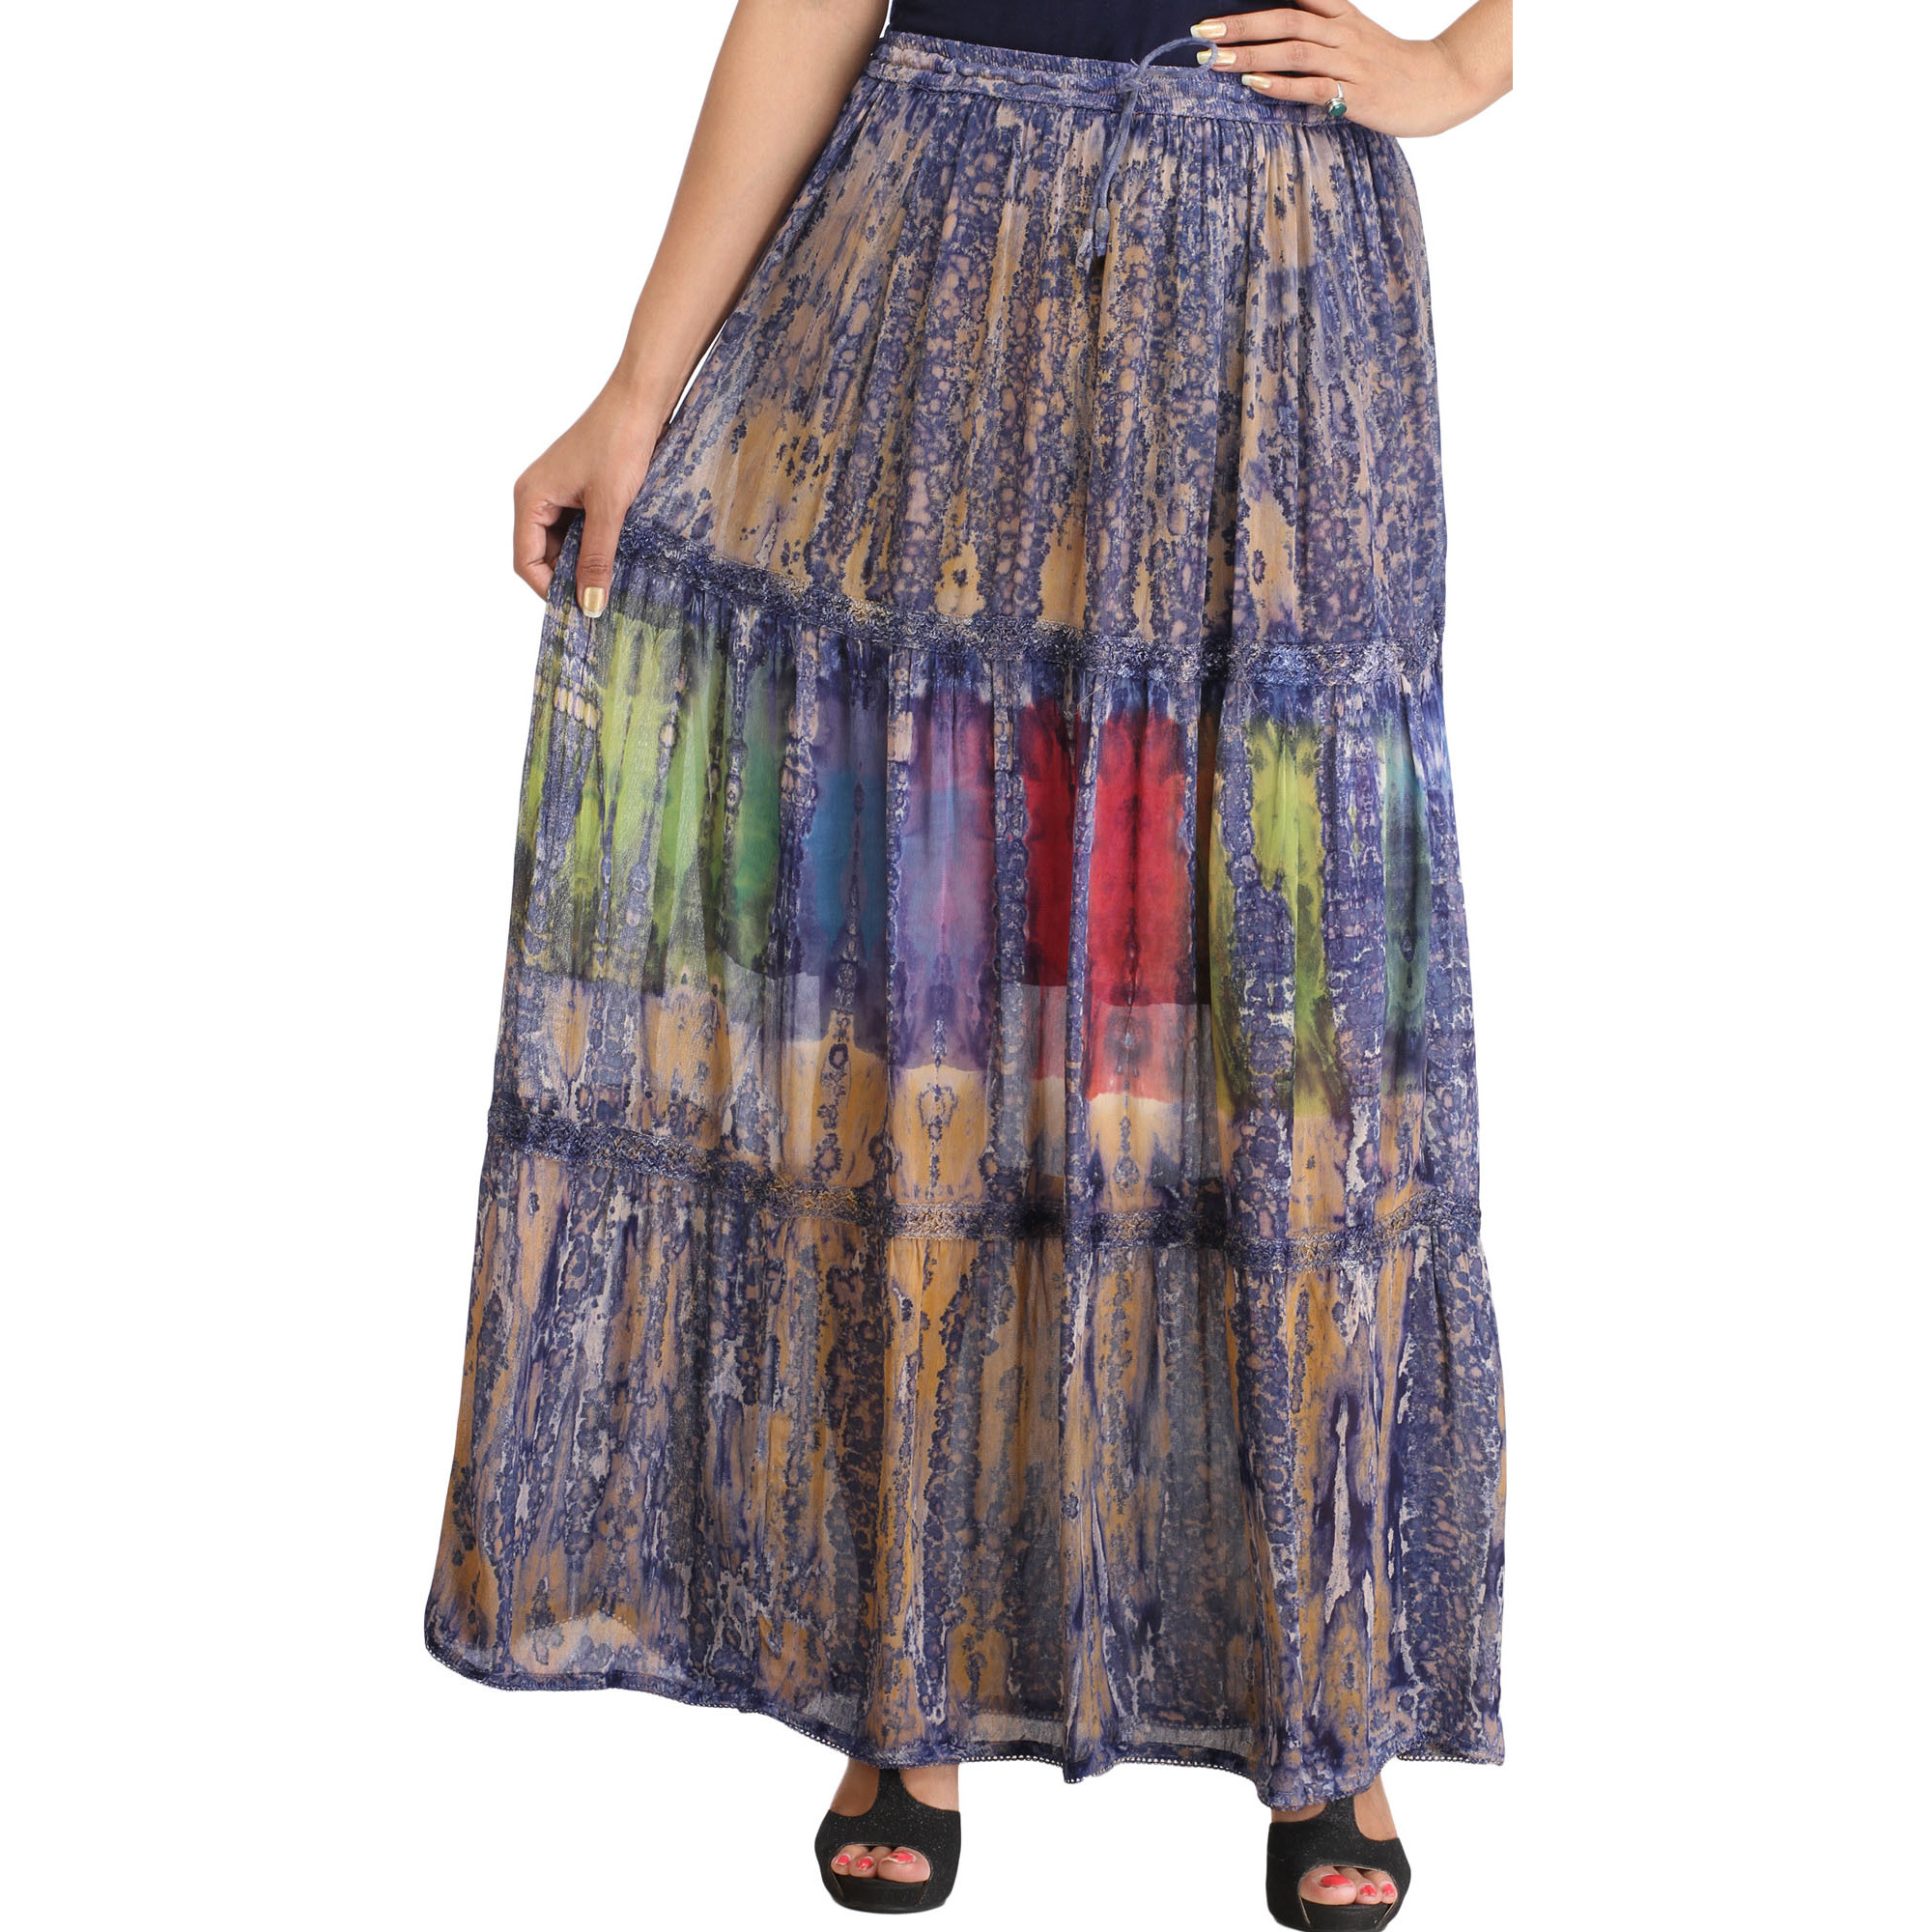 Blue and Beige Batik-Dyed Long Skirt with Lace